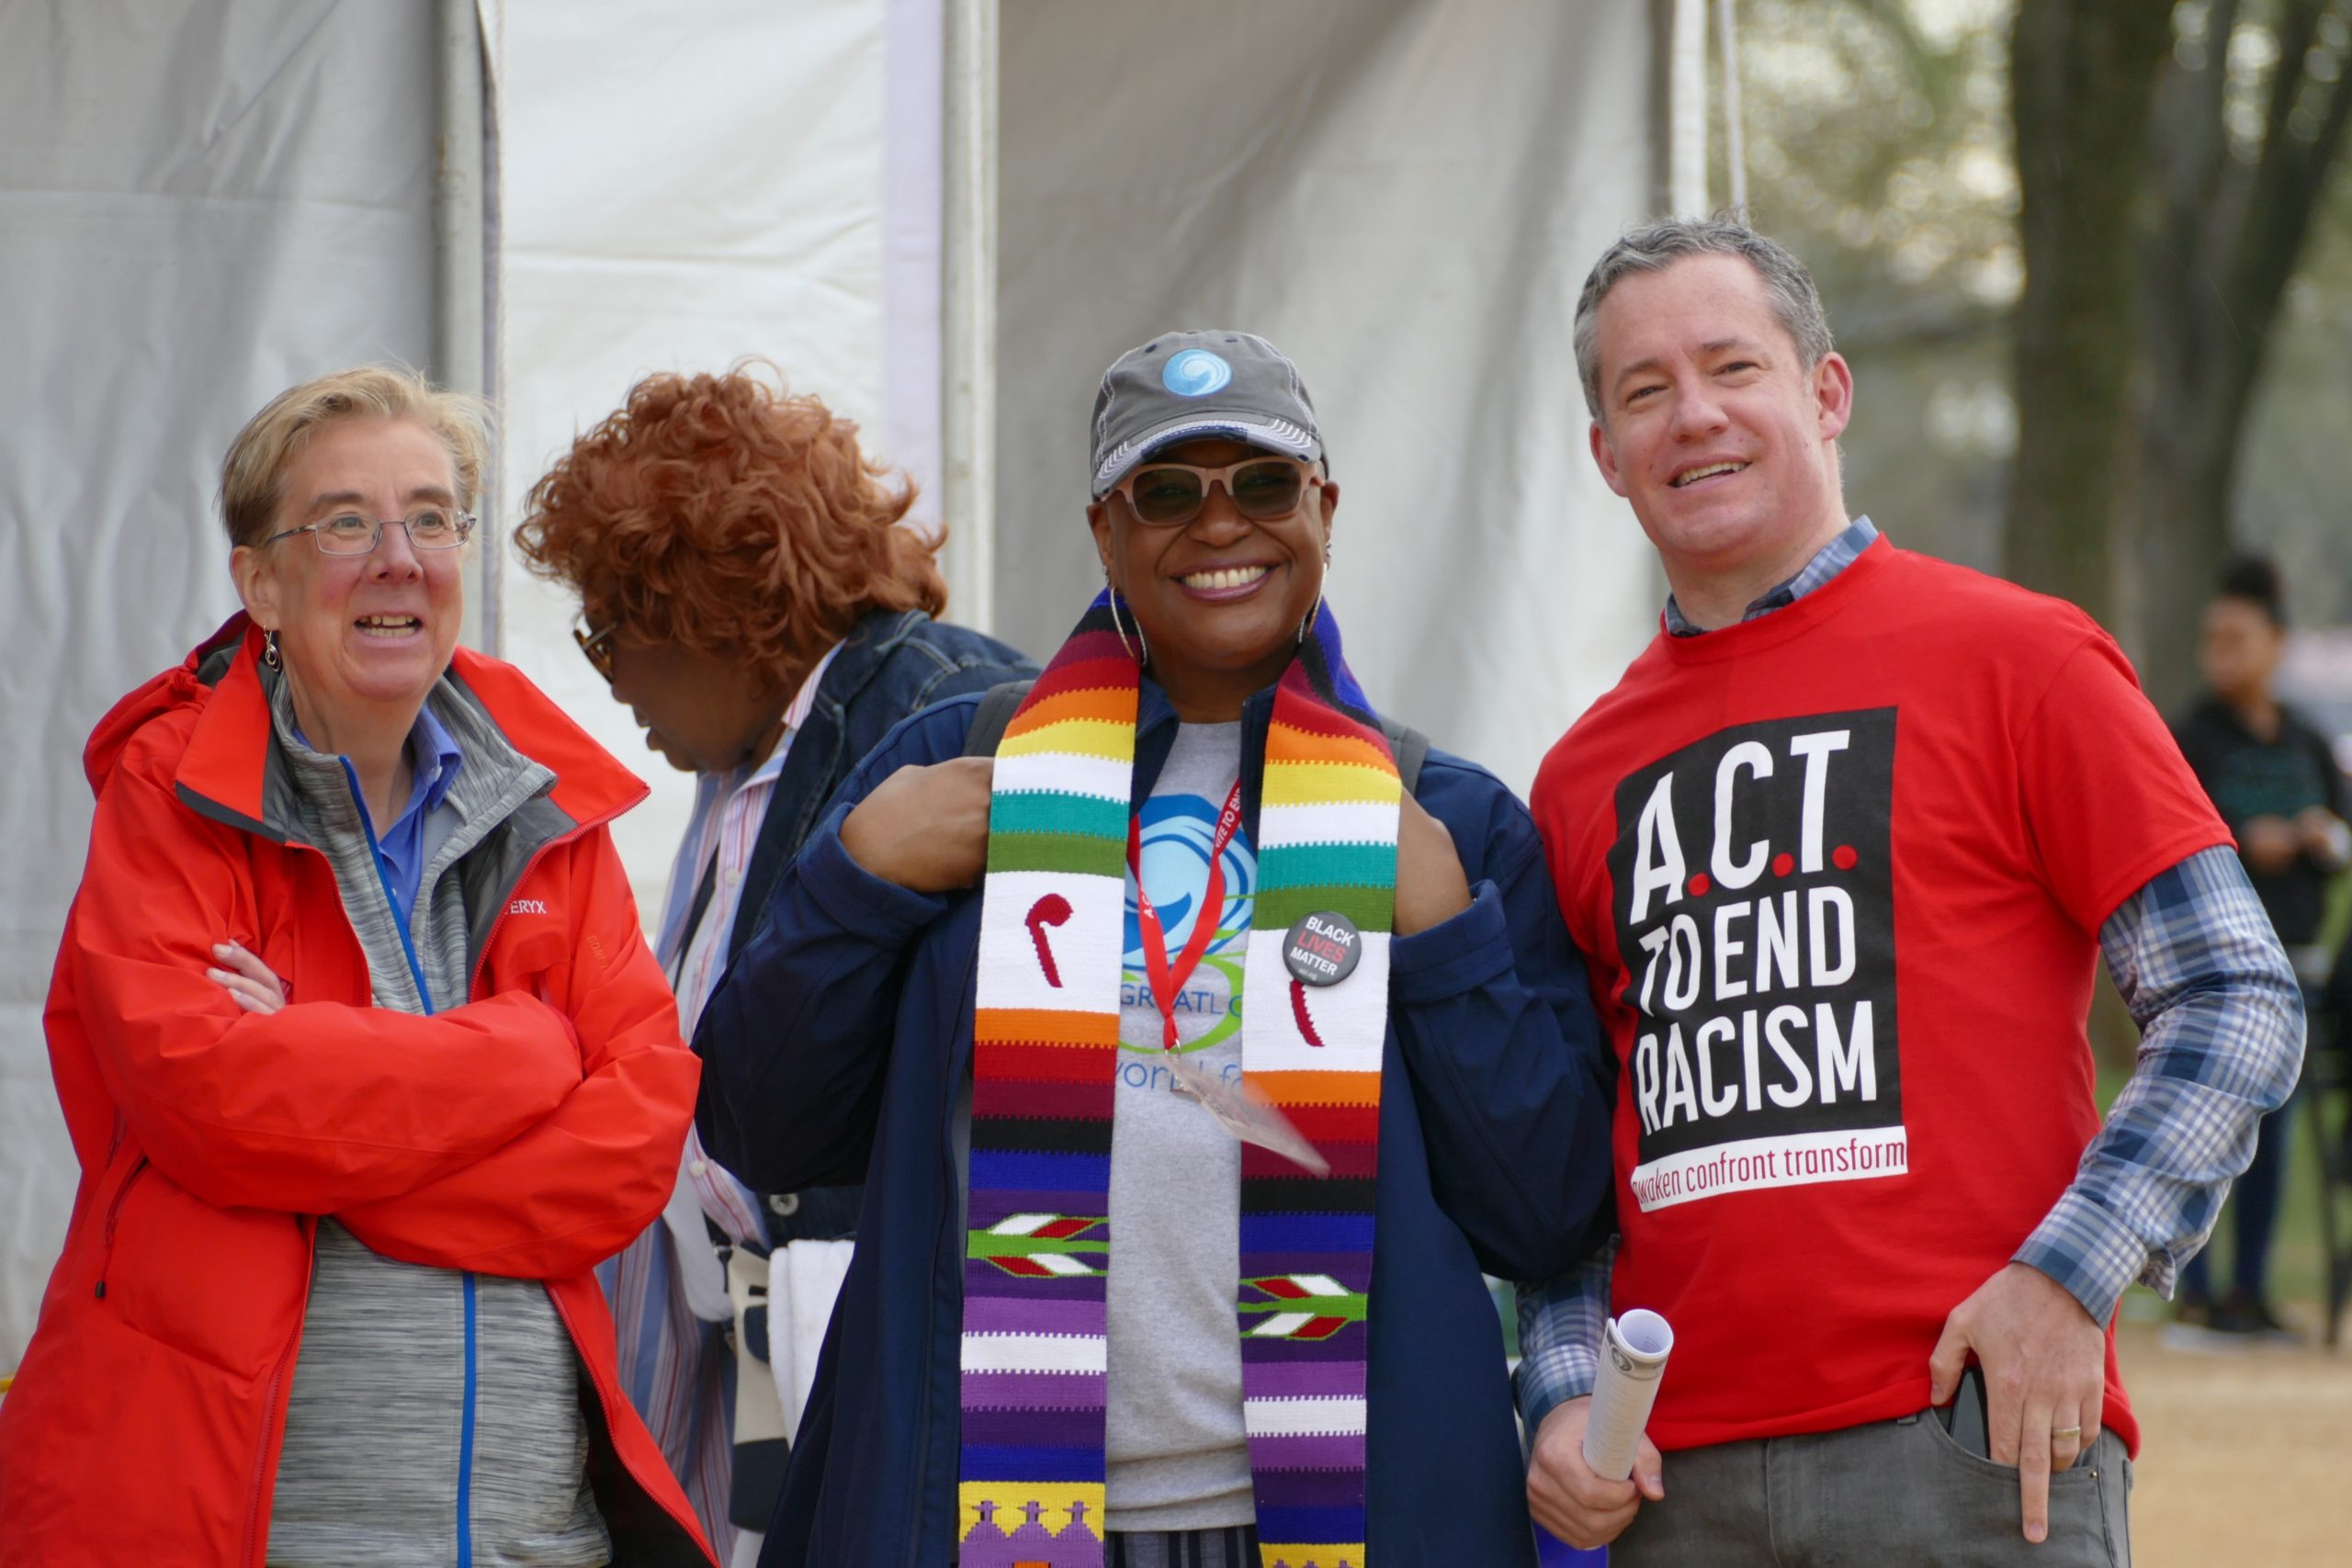 Velda Love at Rally to End Racism